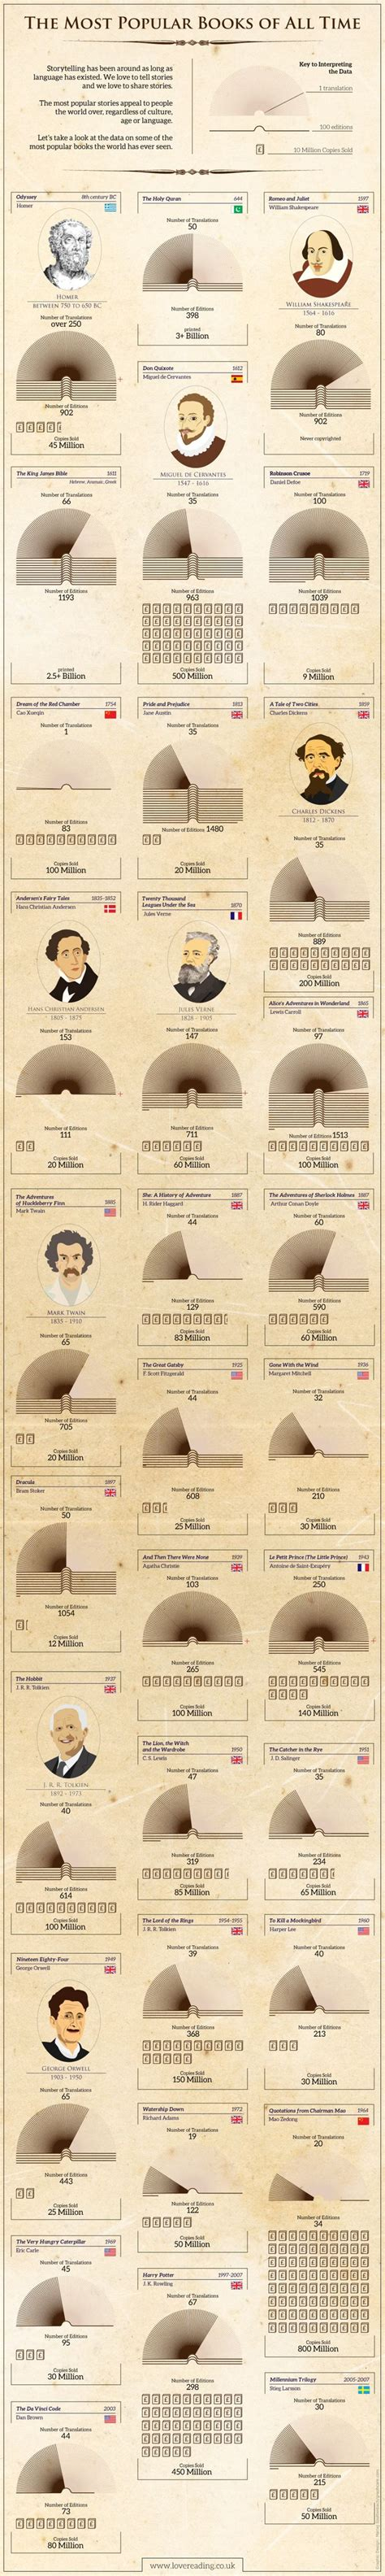 libro the infographic history of awesome quot the most popular books of all time infographic quot literature most